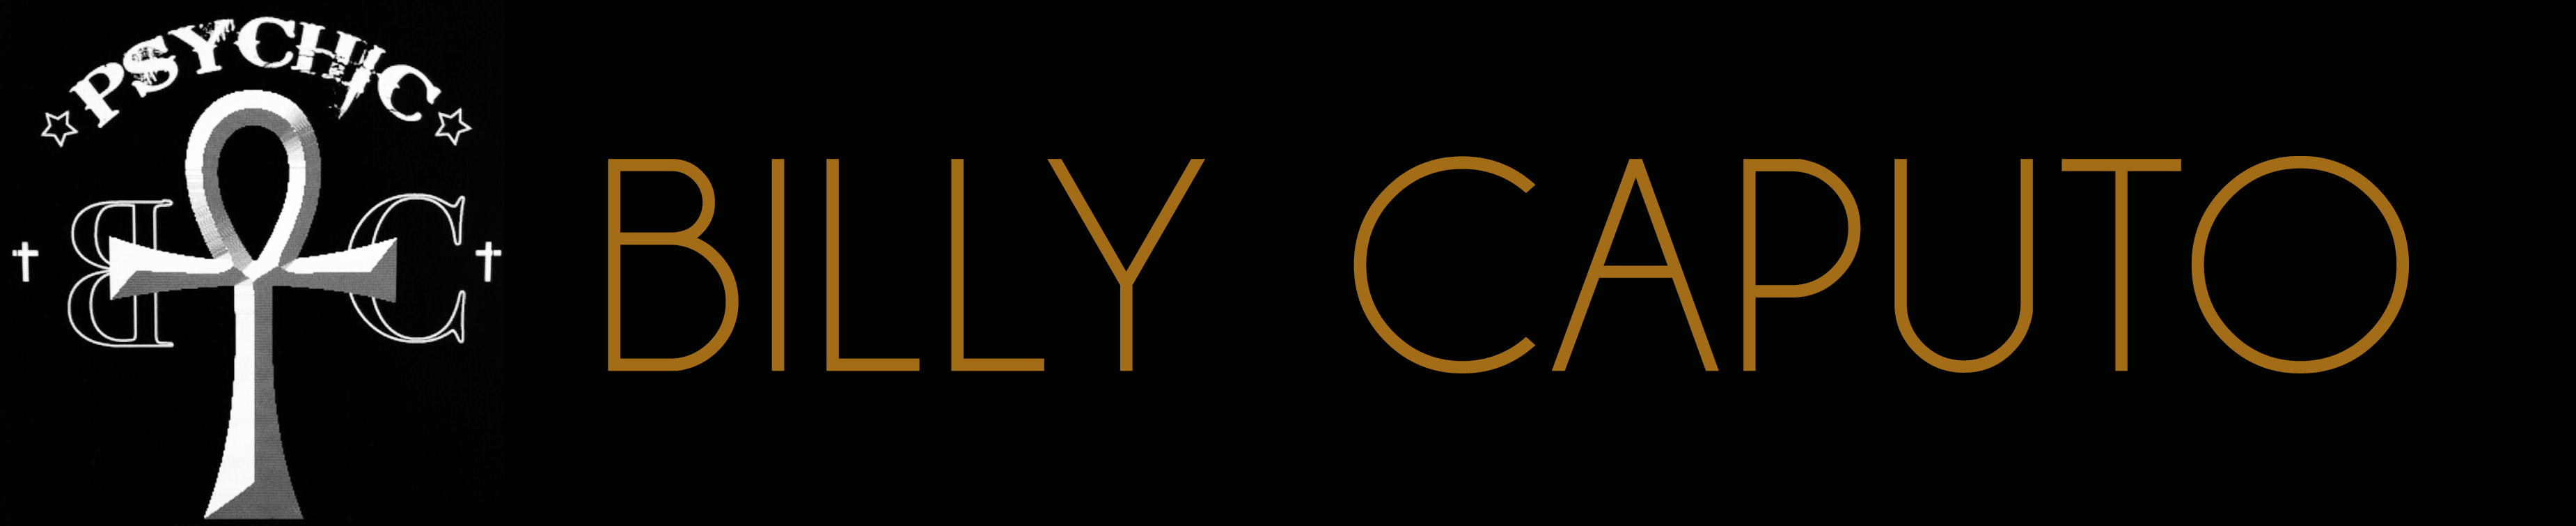 Billy Caputo Sticky Logo Retina